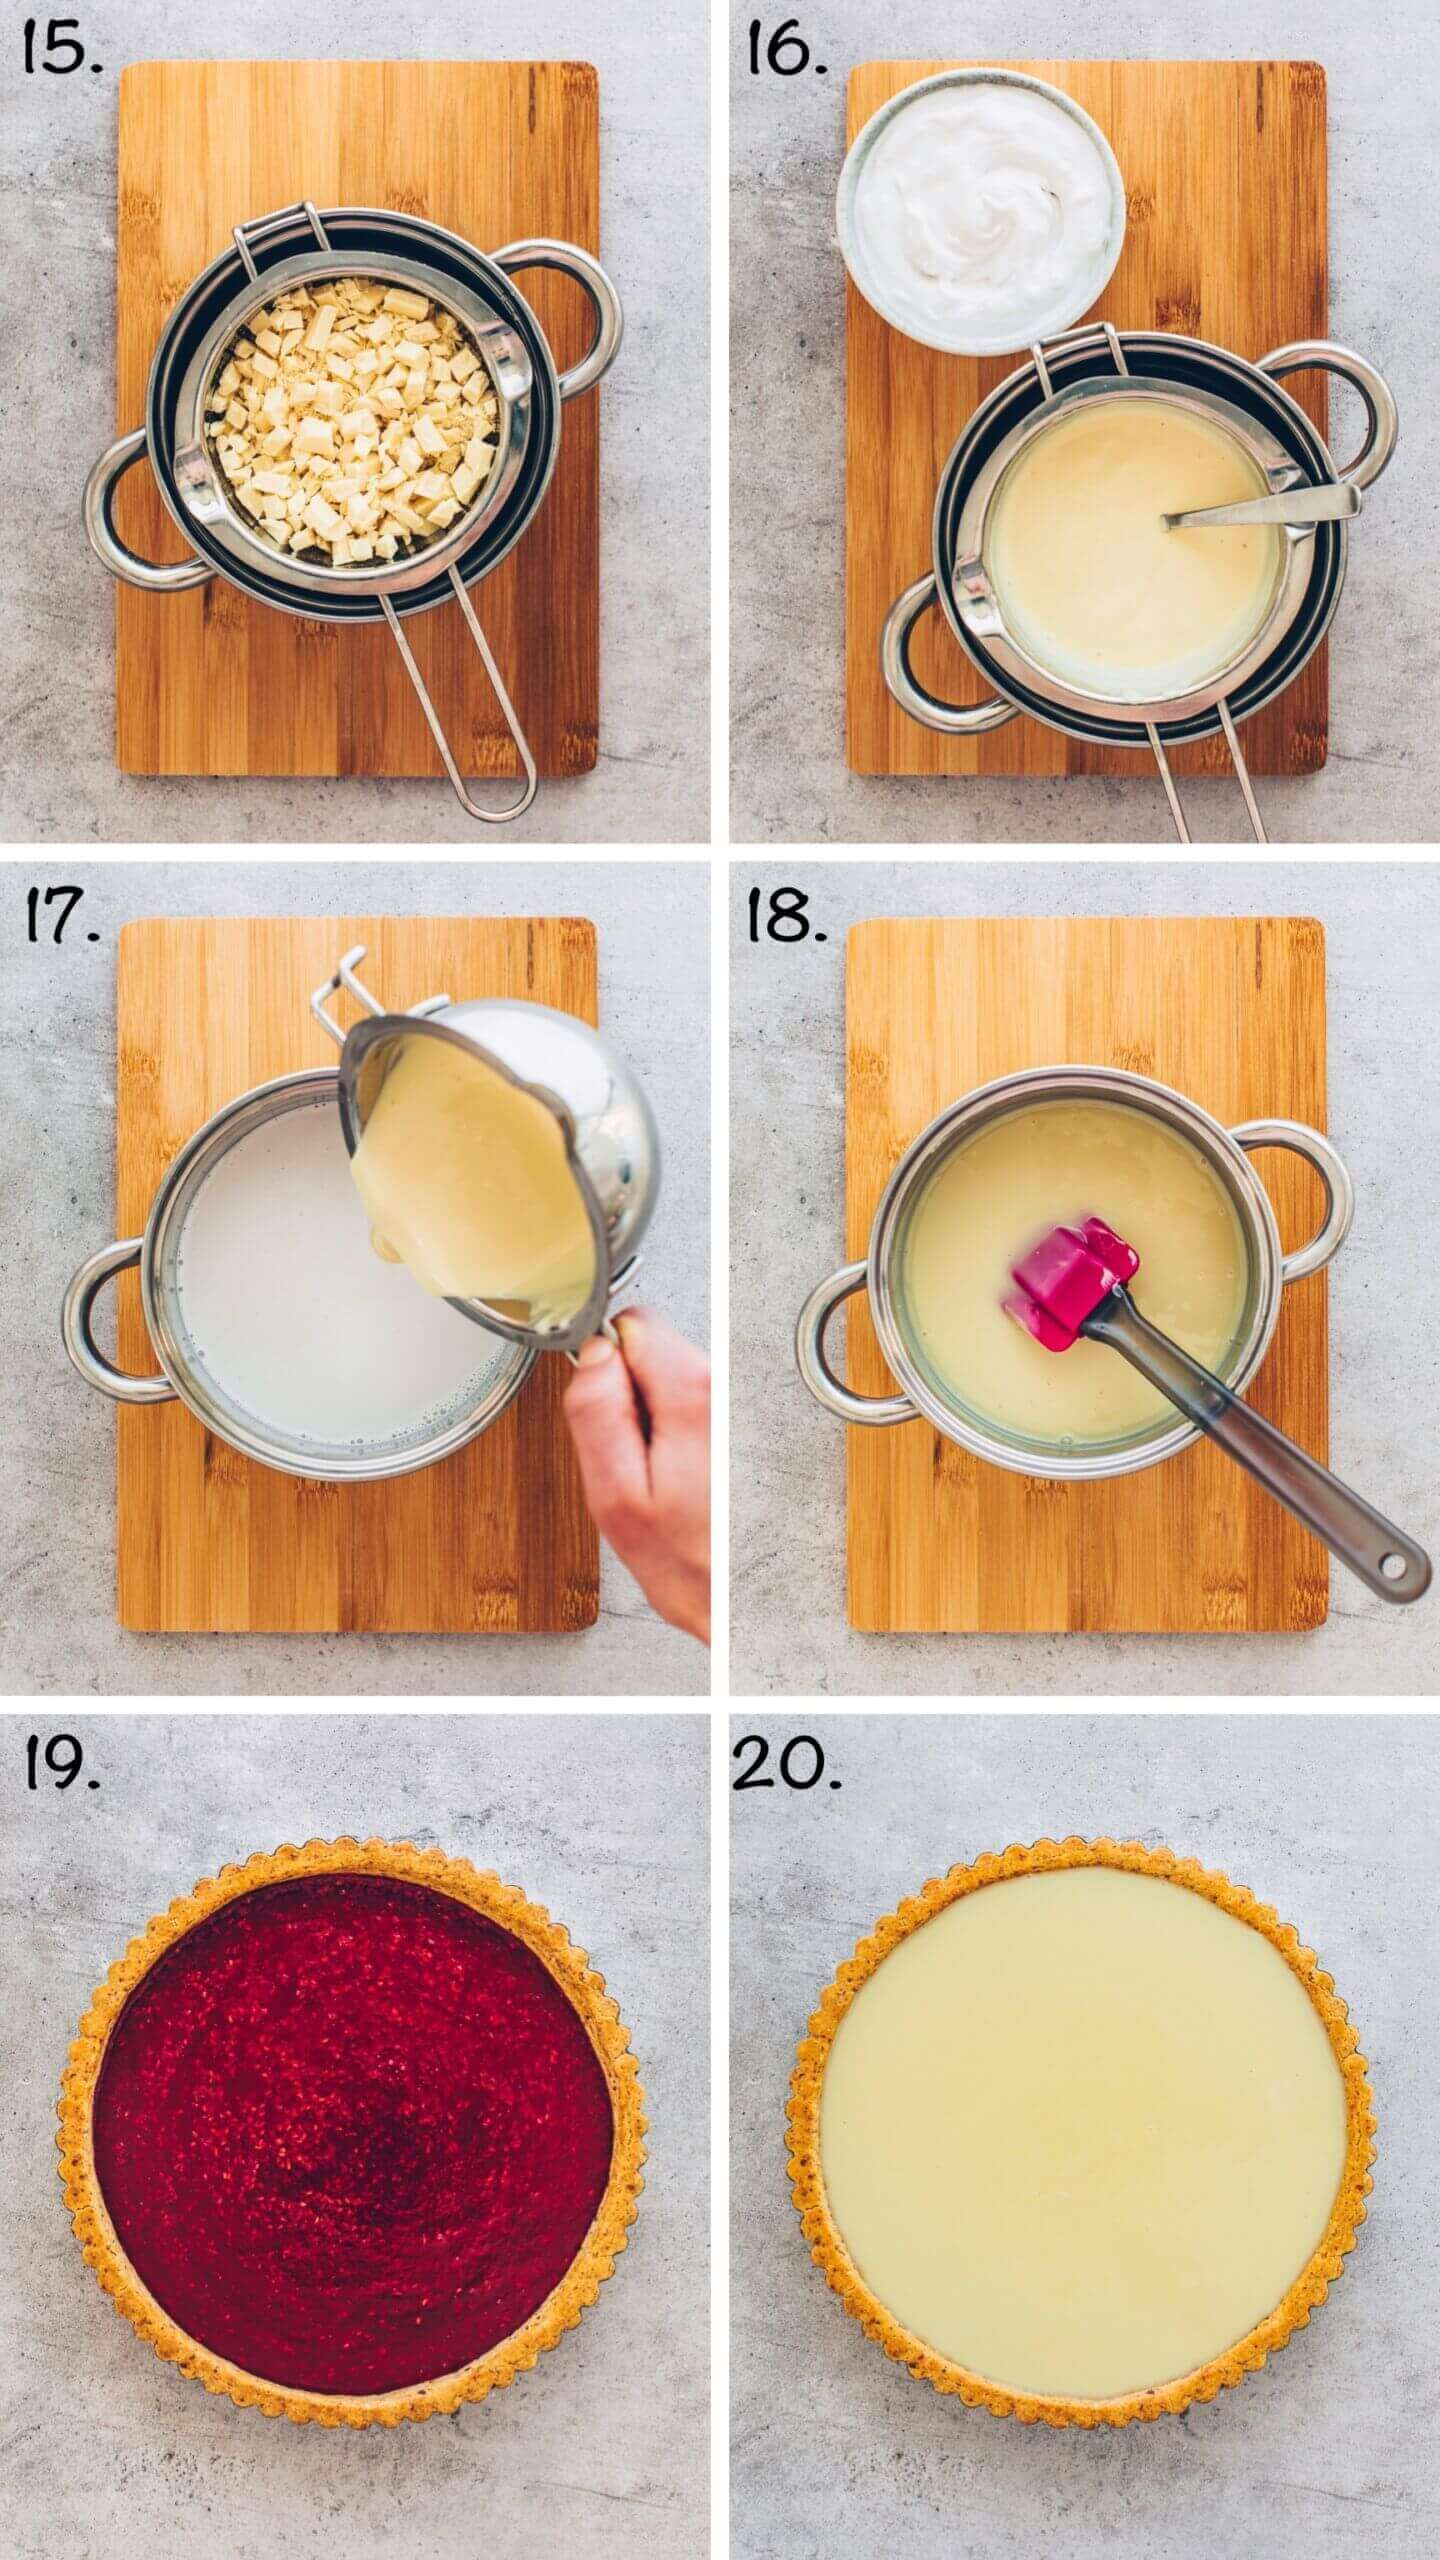 How to make White Chocolate Raspberry Tart step-by-step recipe